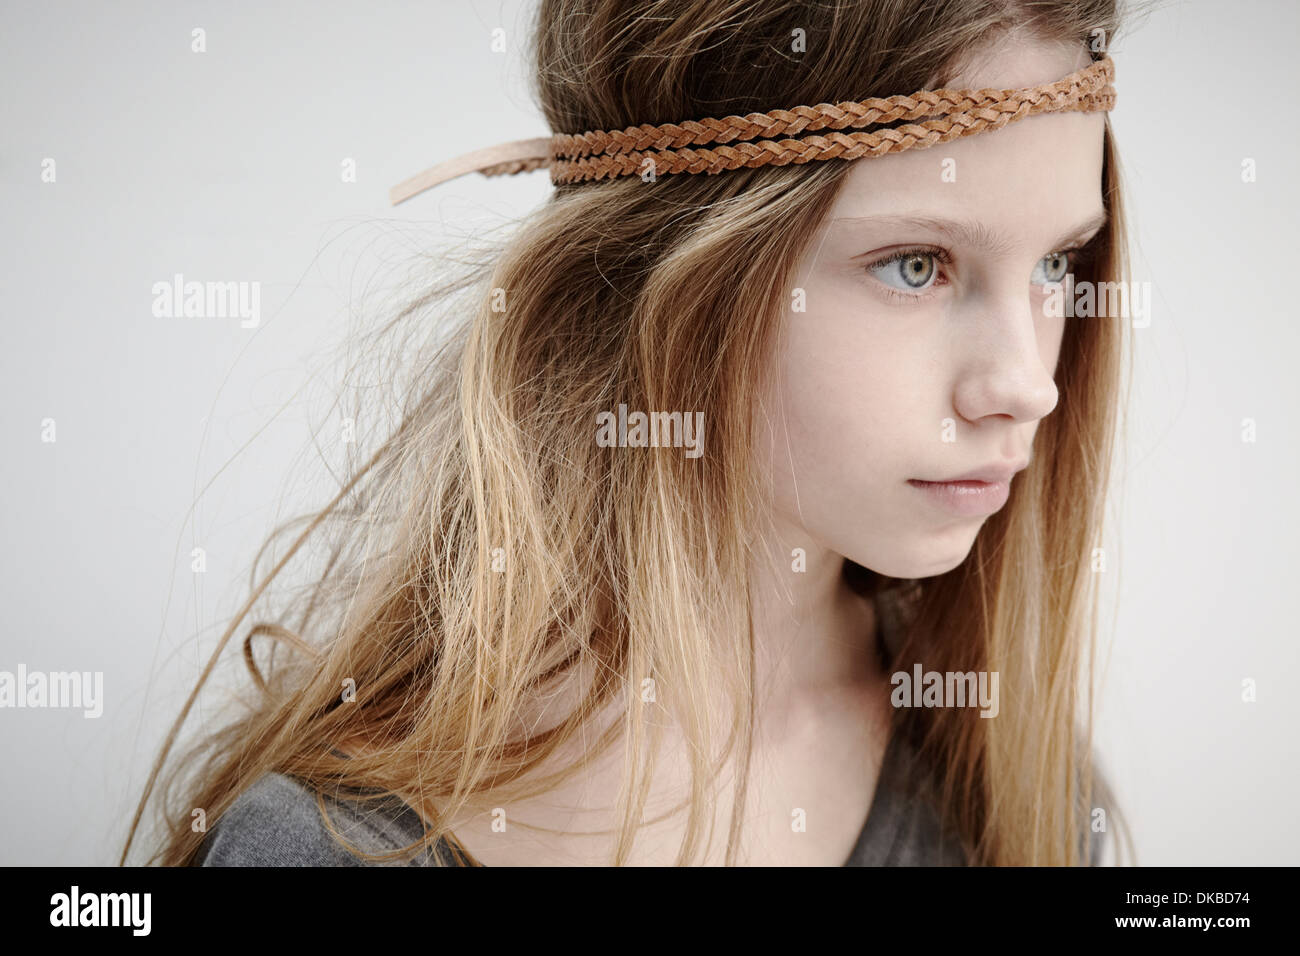 Portrait of girl wearing leather braid around head - Stock Image